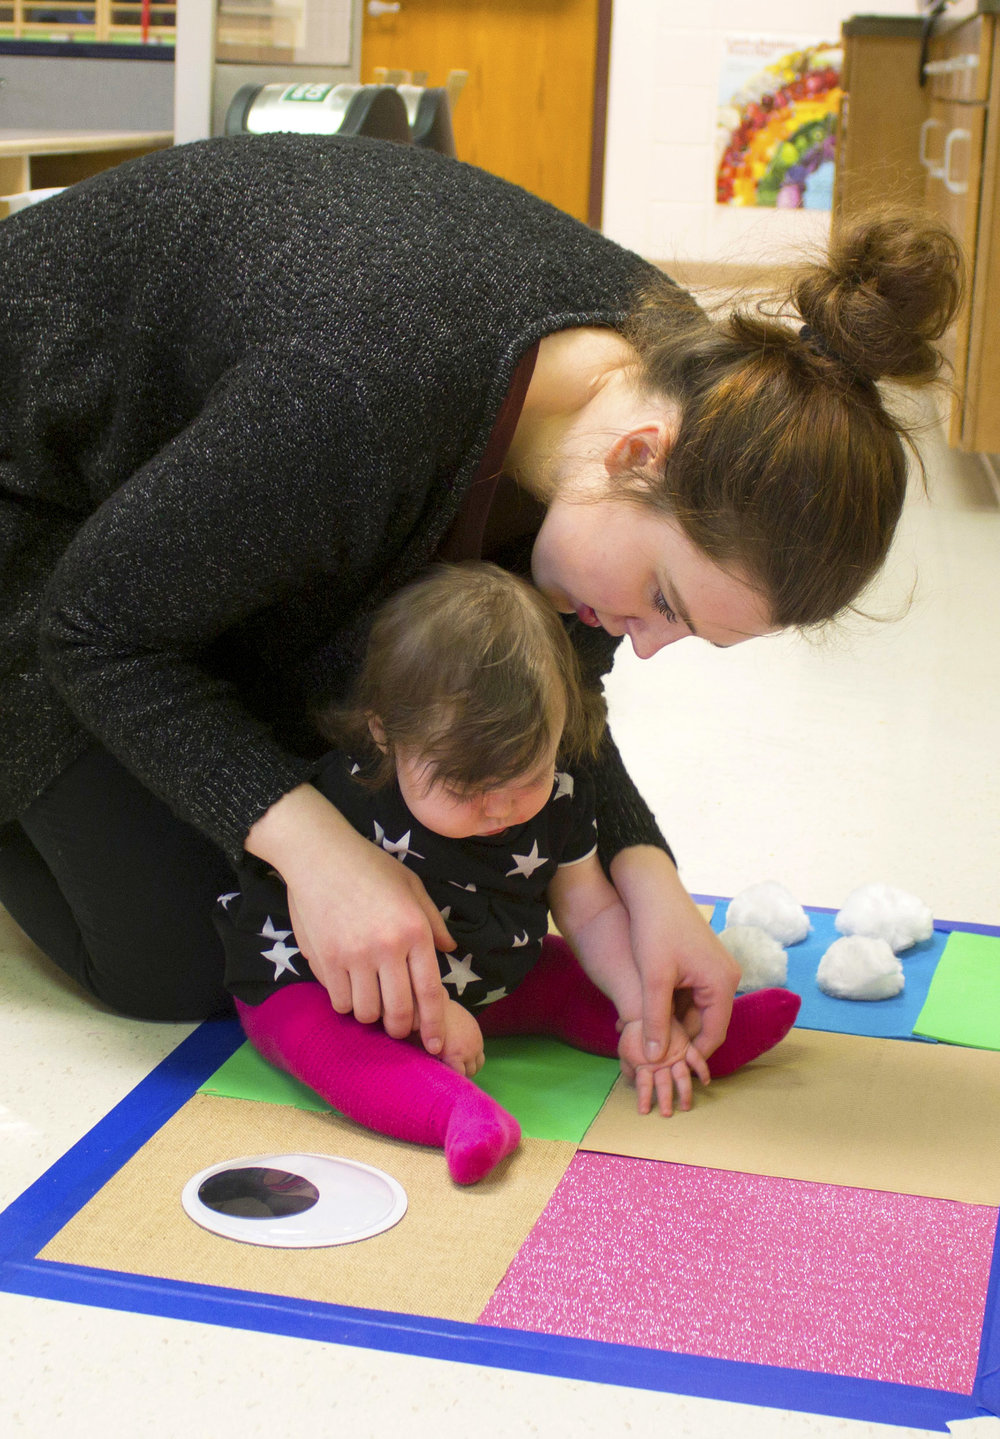 Alyssa Boyer  UW-Stout Early Childhood Education INTERNSHIP: Infant-Preschool Assistant at the Child and Family Study Center LOCATION: UW-Stout